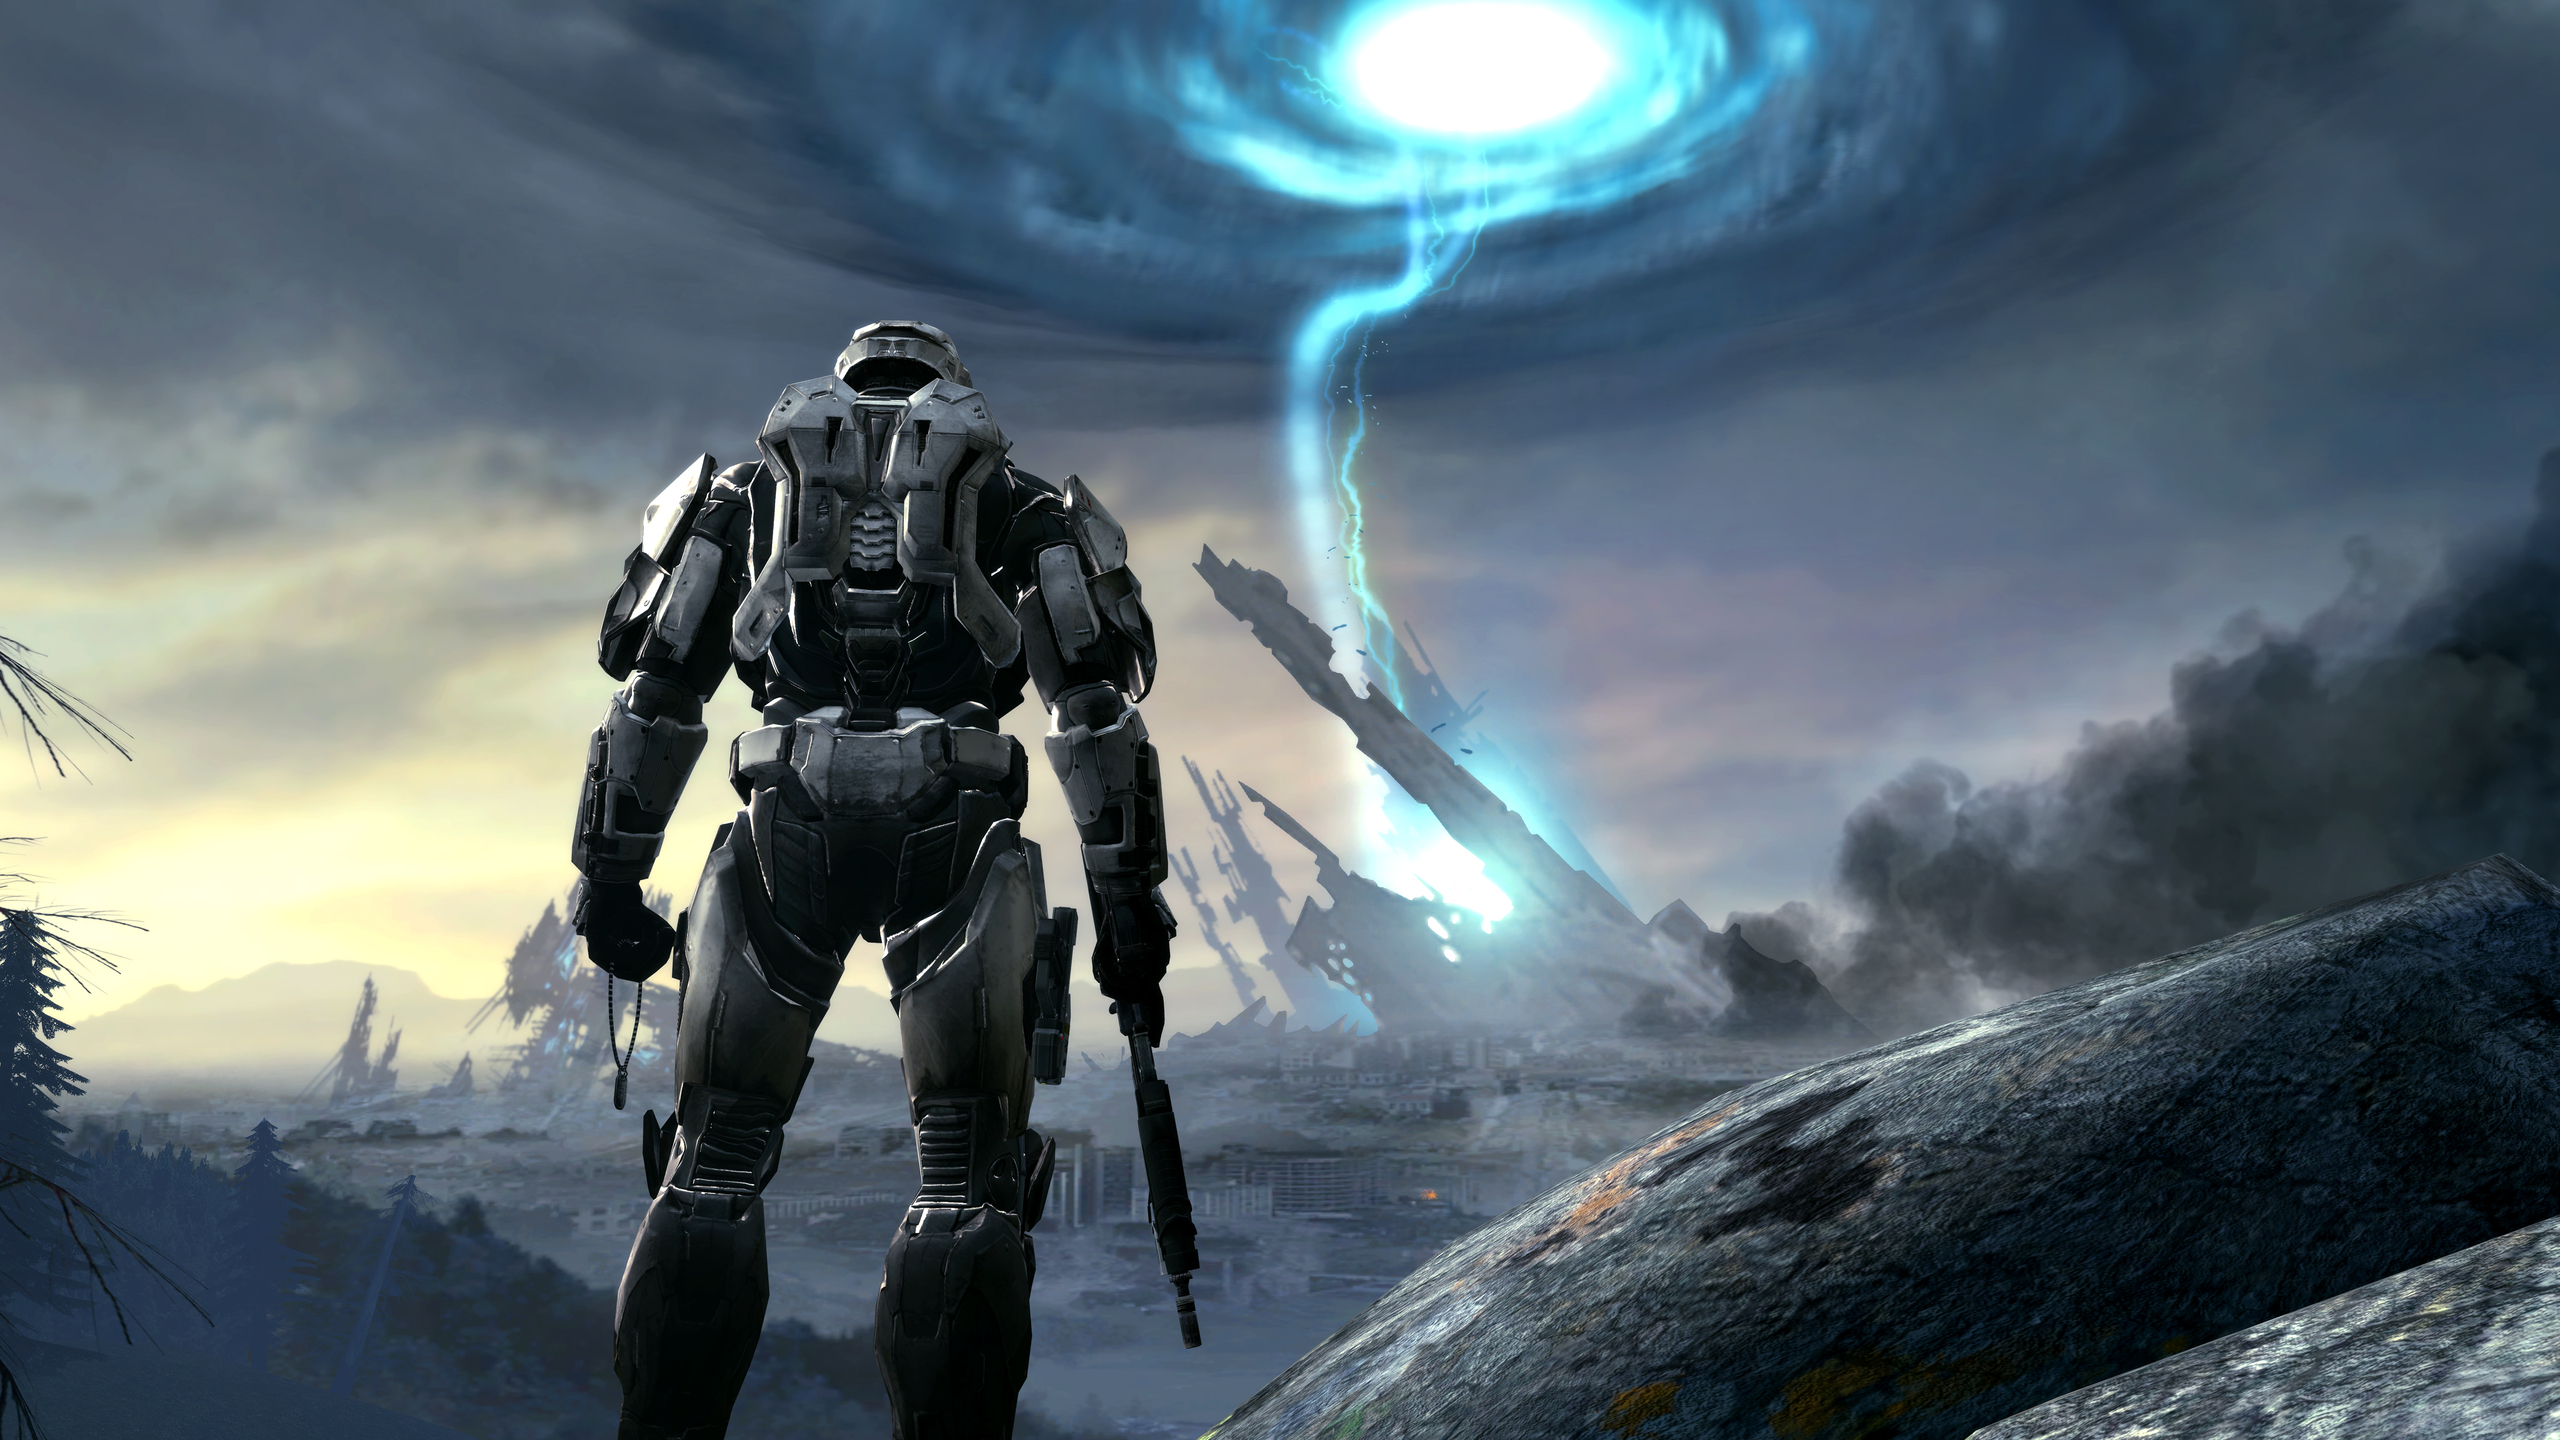 2560x1440 Halo Game Artwork In 4k 1440P Resolution HD 4k Wallpapers, Images, Backgrounds, Photos ...